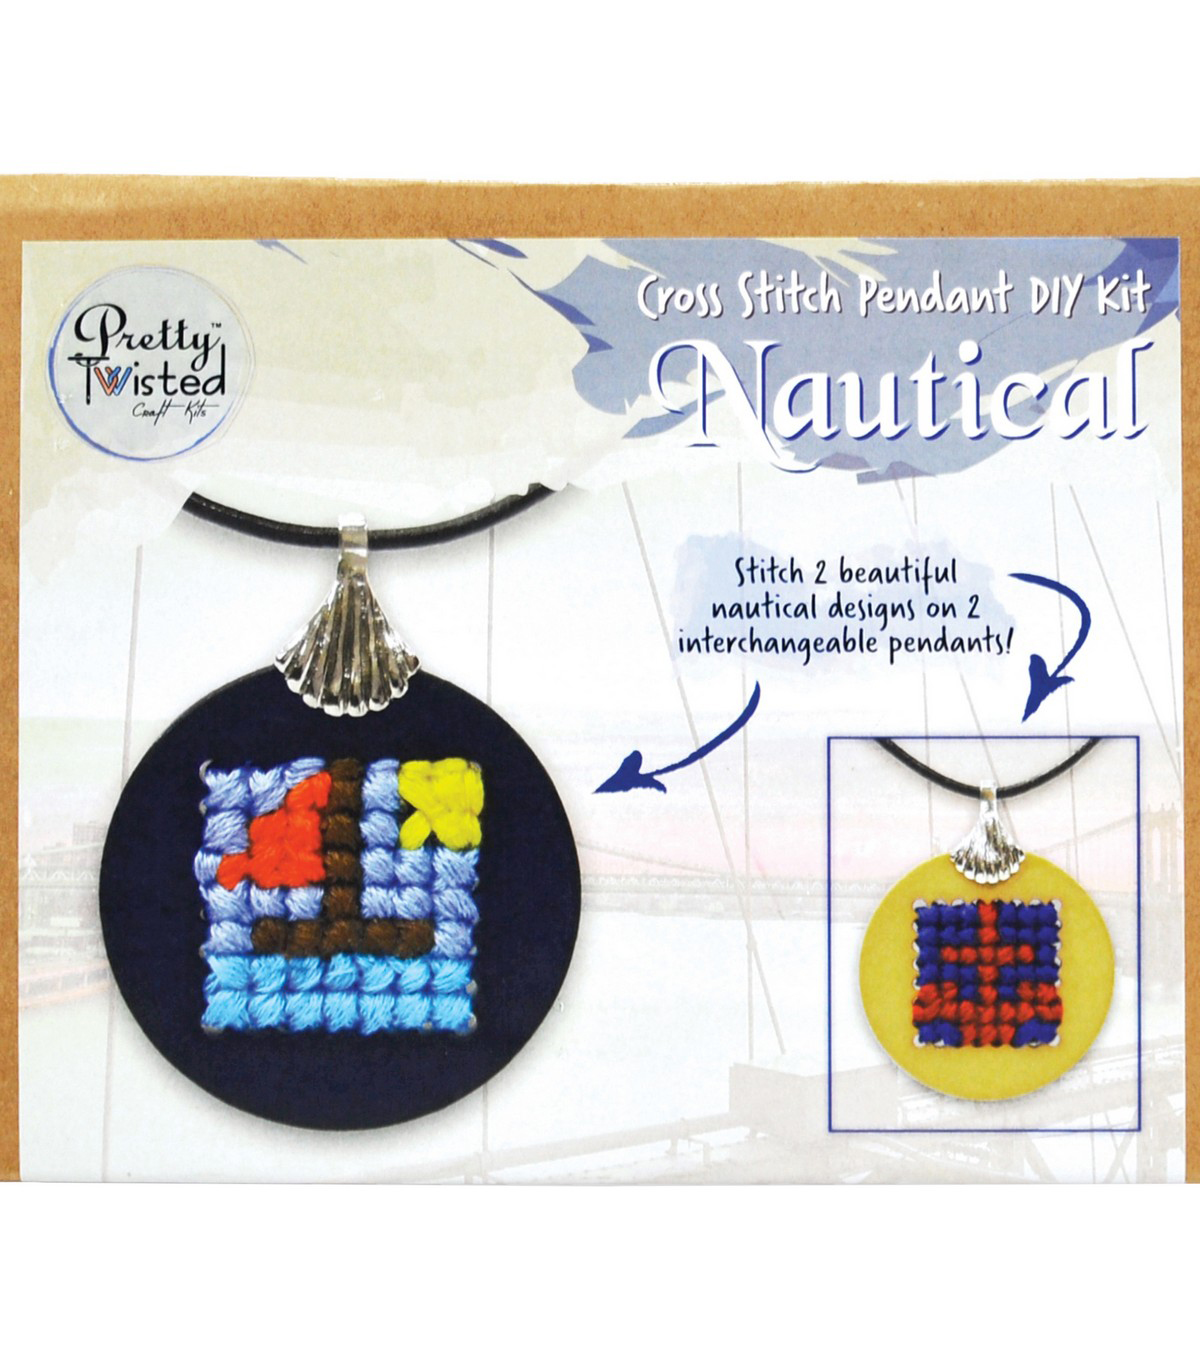 Pretty Twisted Cross Stitch Pendant DIY Craft Kit-Nautical